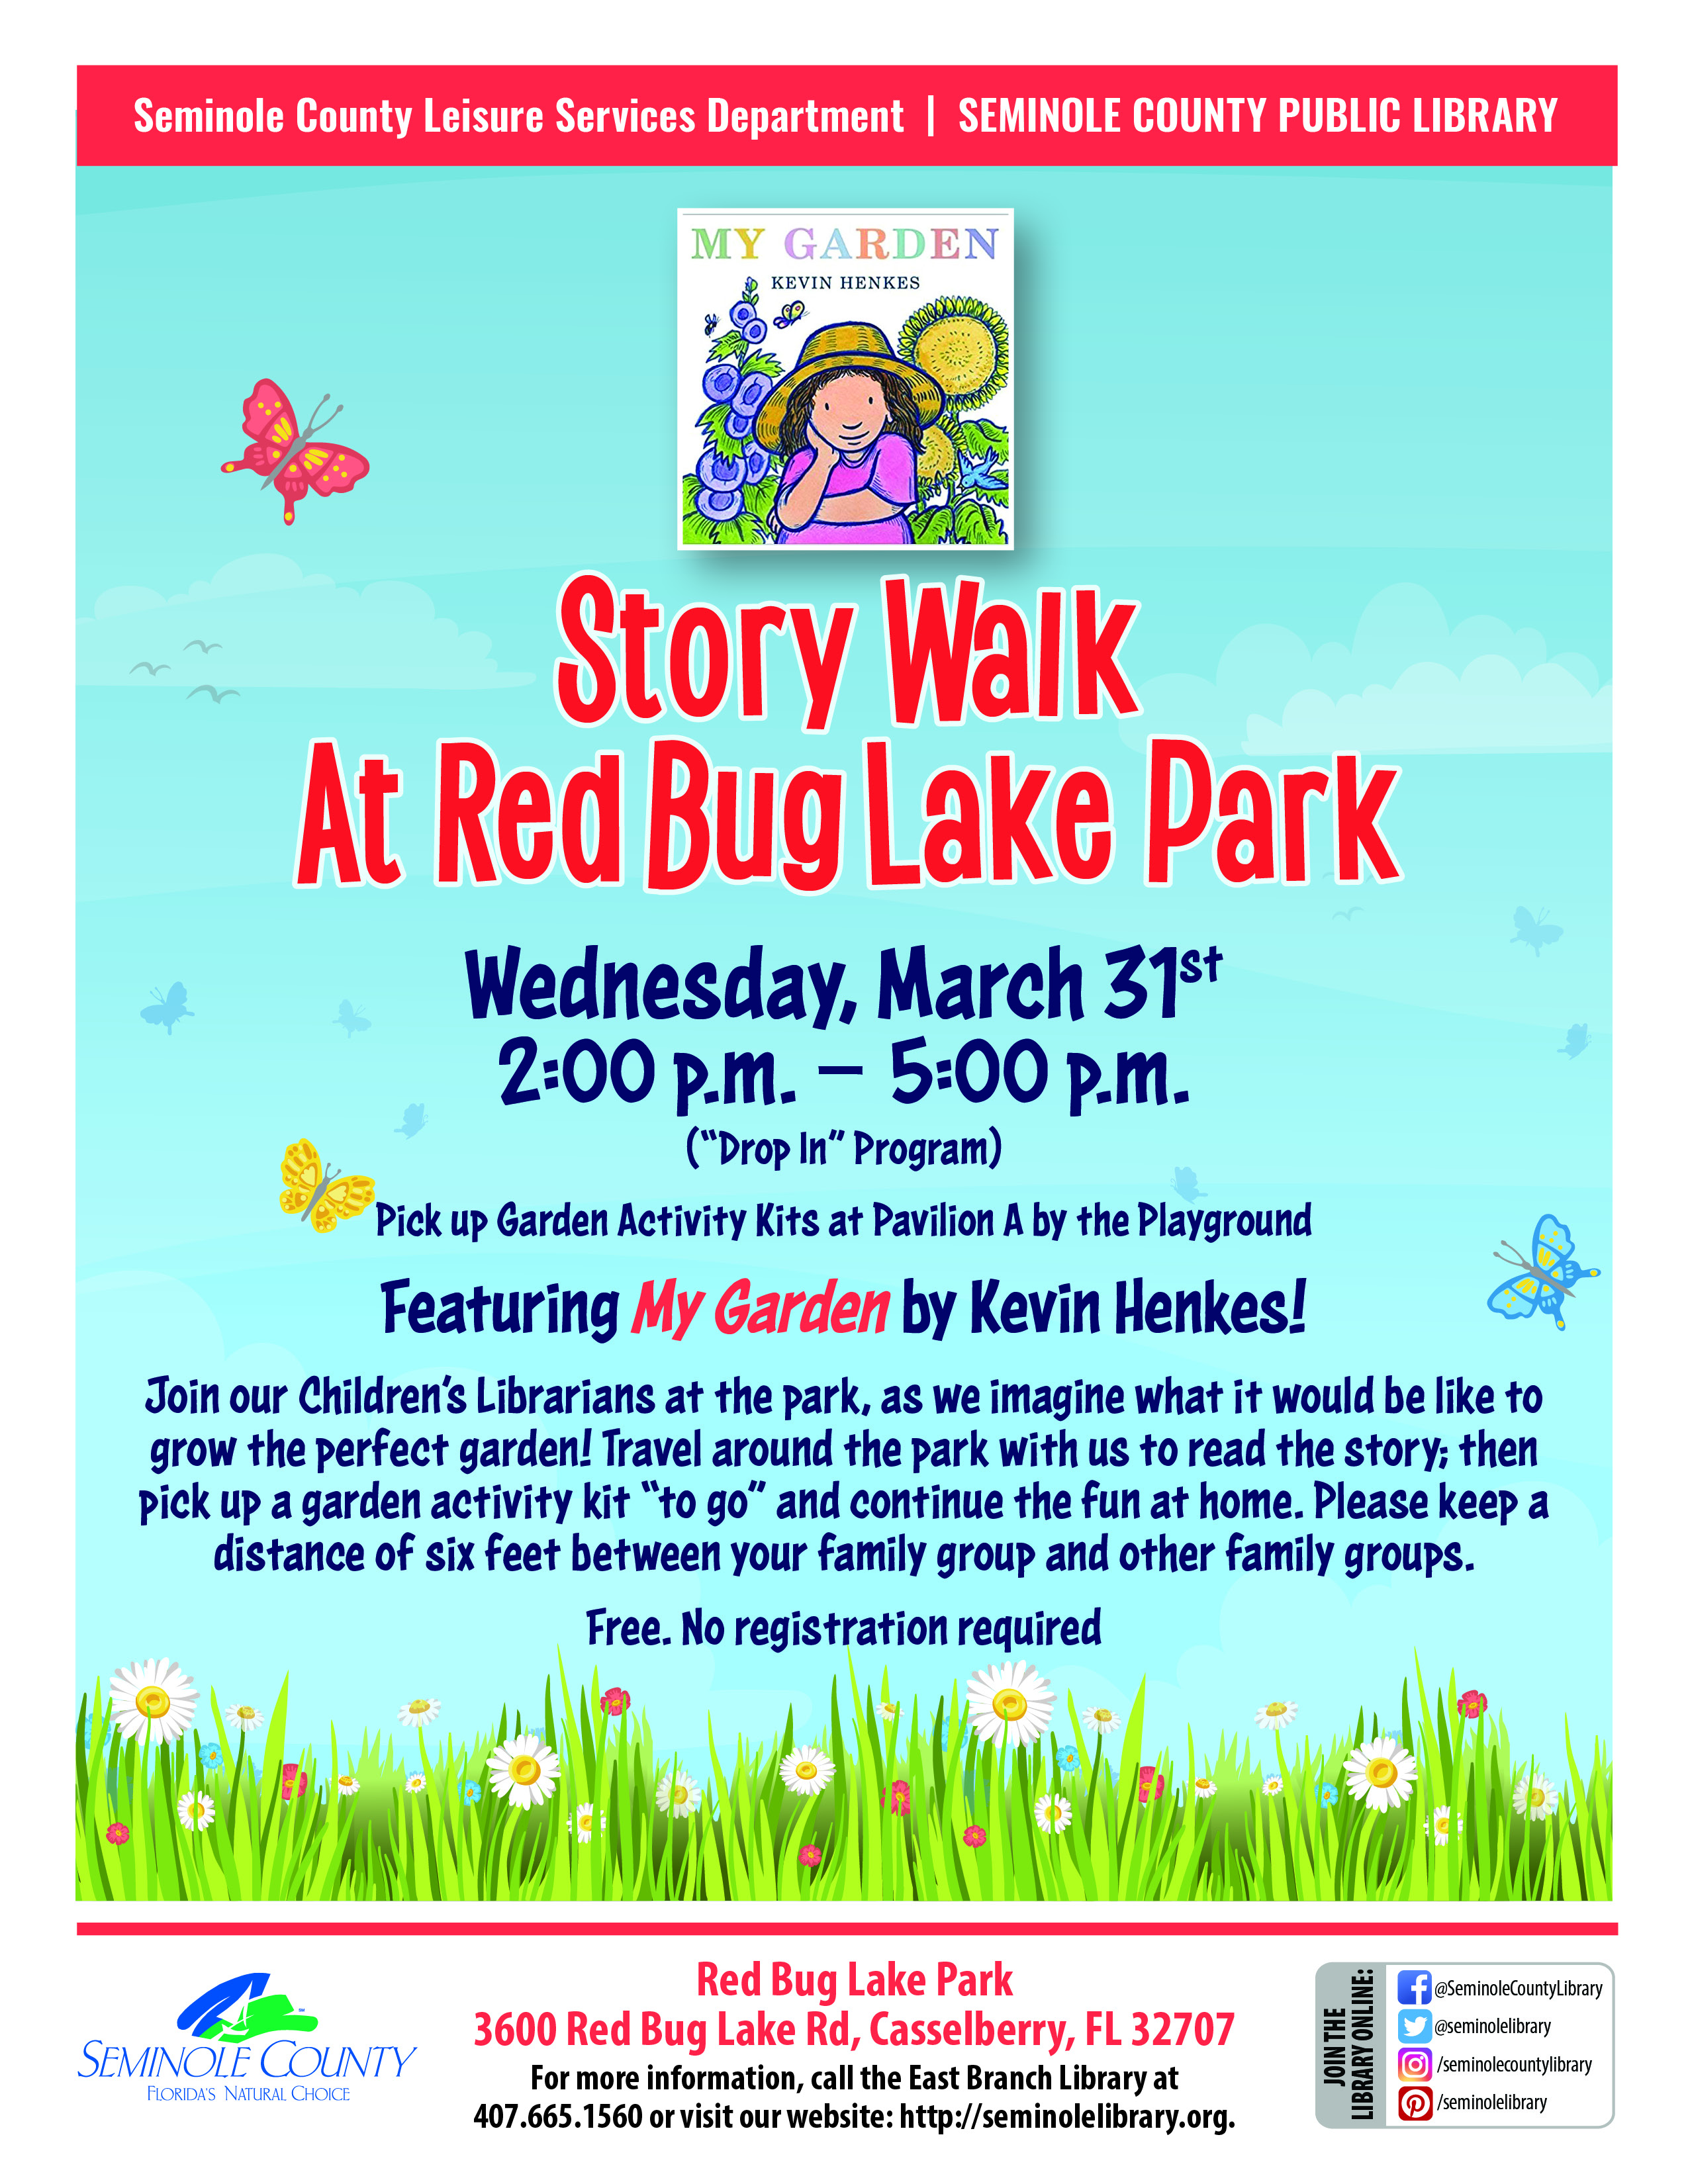 Story Walk at Red Bug Lake Park with the Seminole County Public Library - March 31st